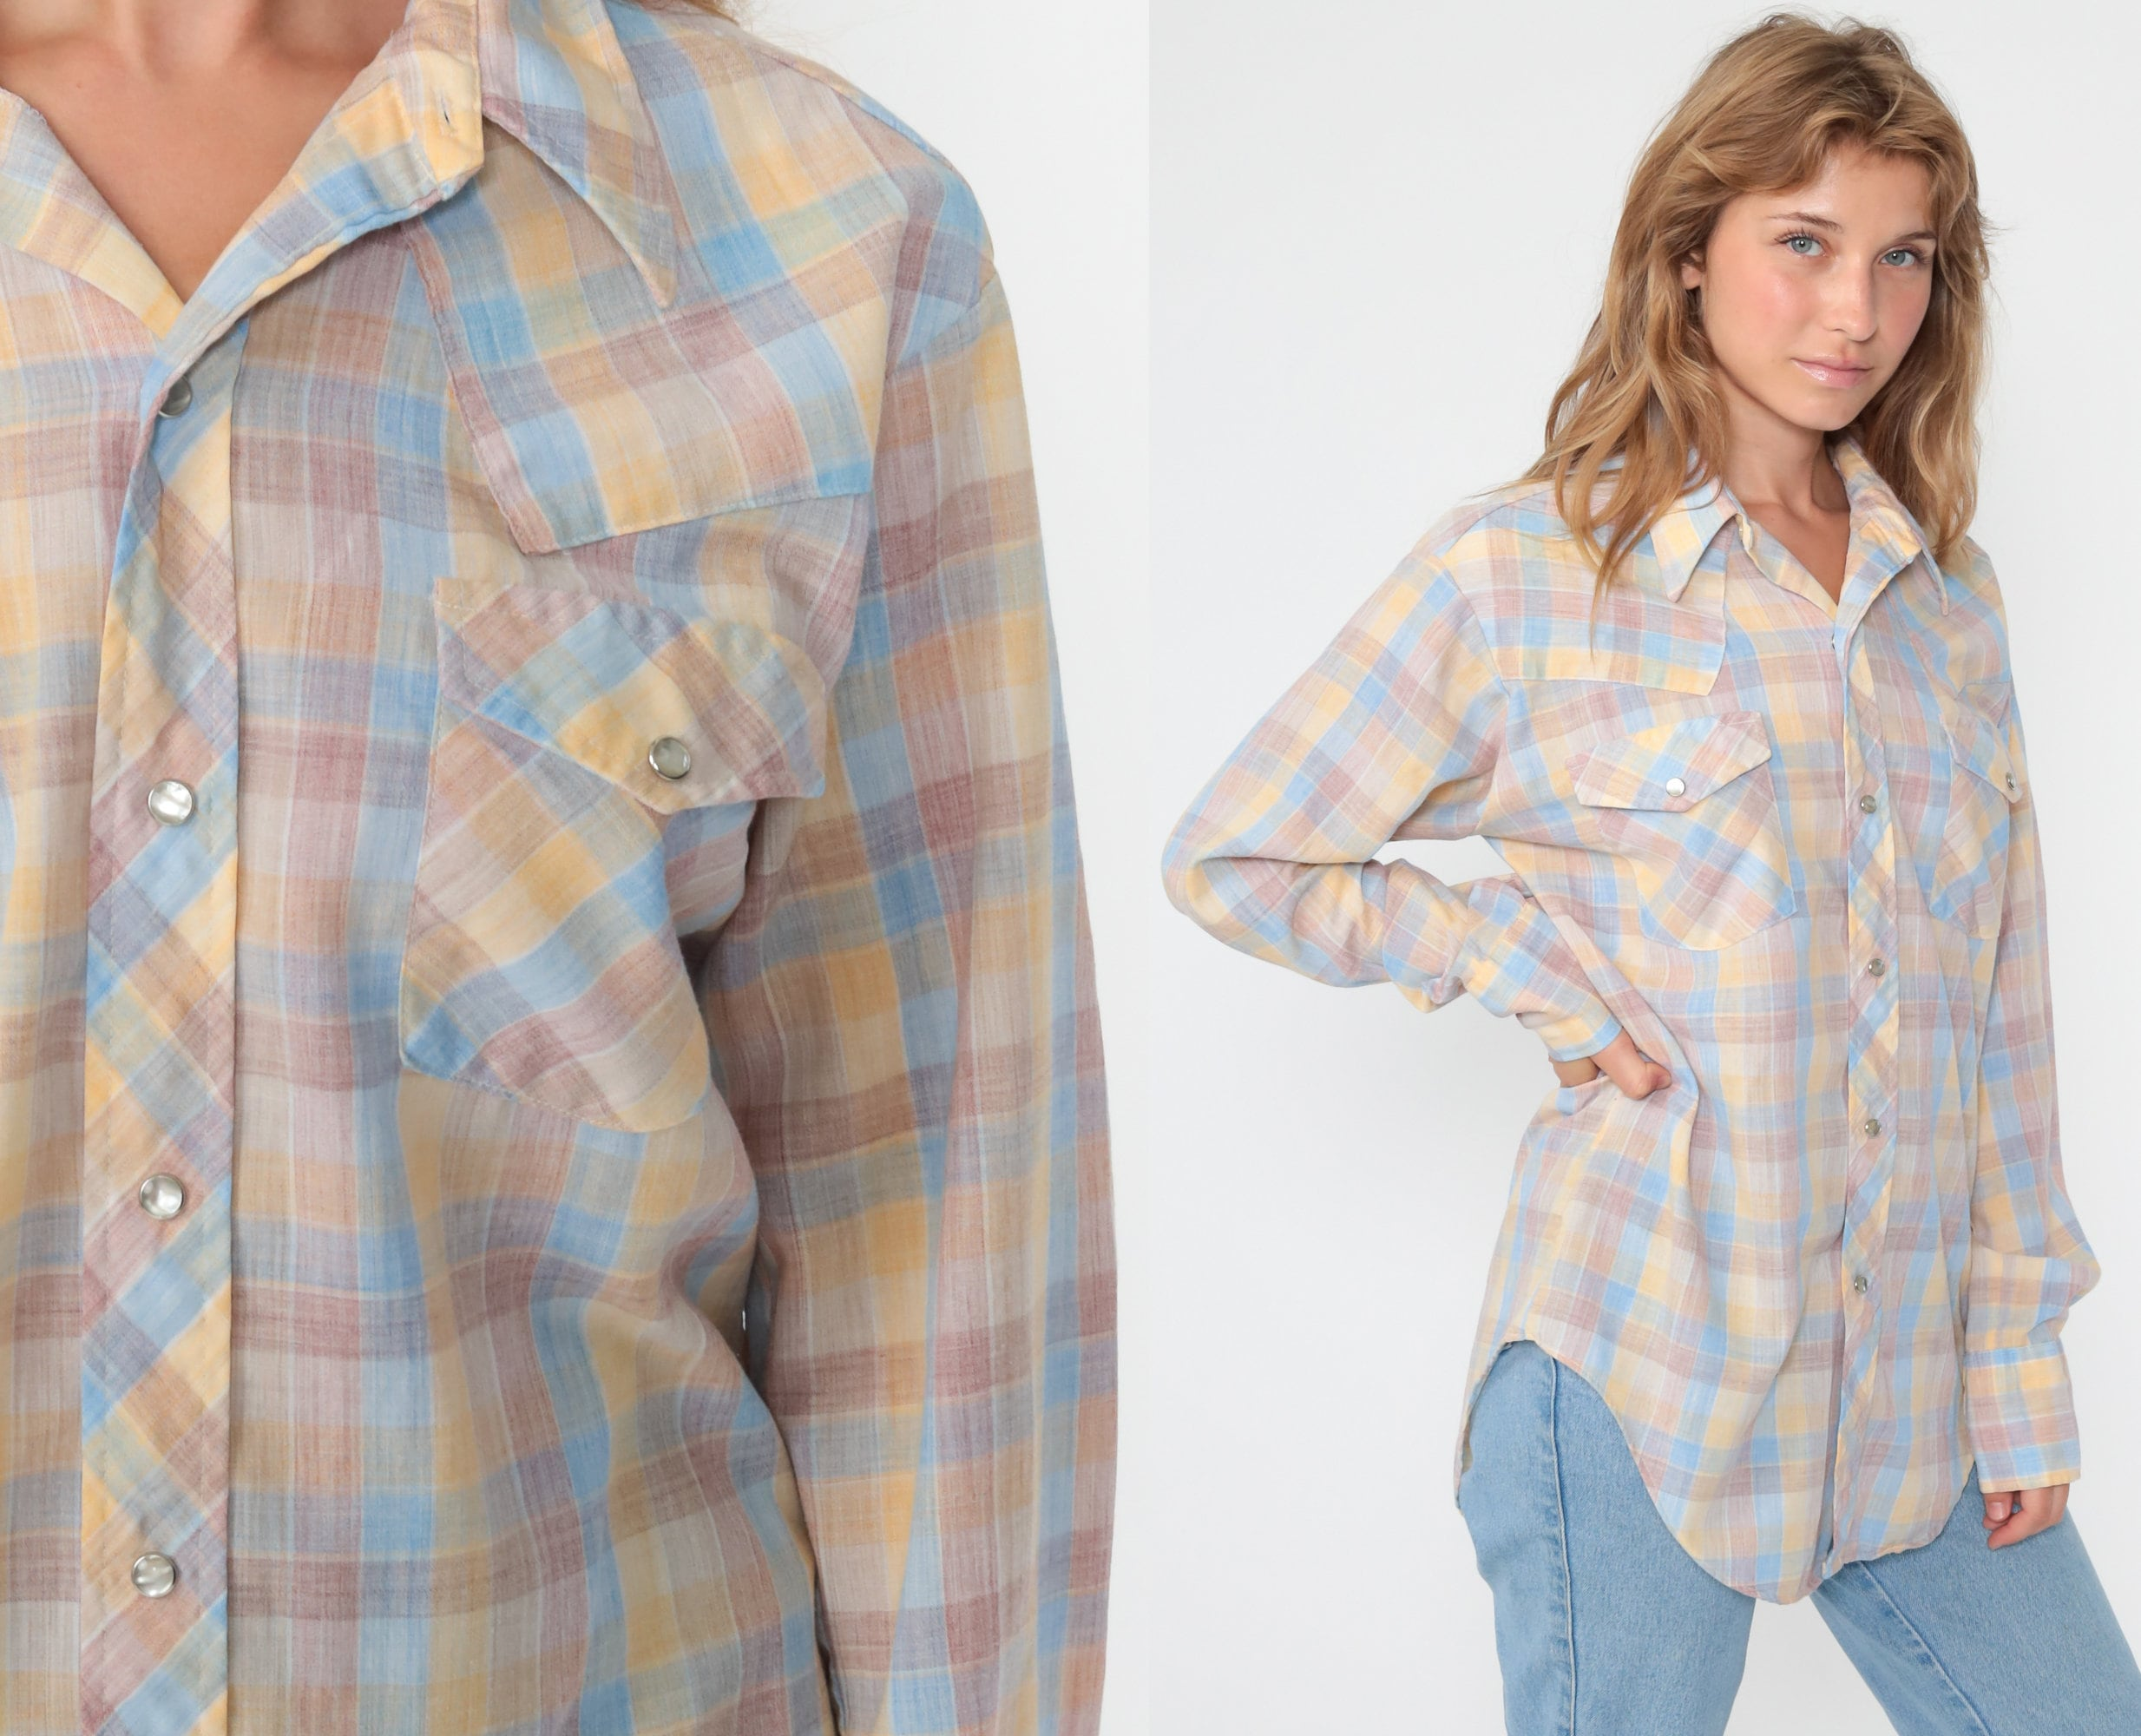 70s Western Shirt Pearl Snap Shirt Plaid Top 1970s Red Houndstooth Shirt Cotton Vintage Hipster Checkered Button Up Extra Small xs